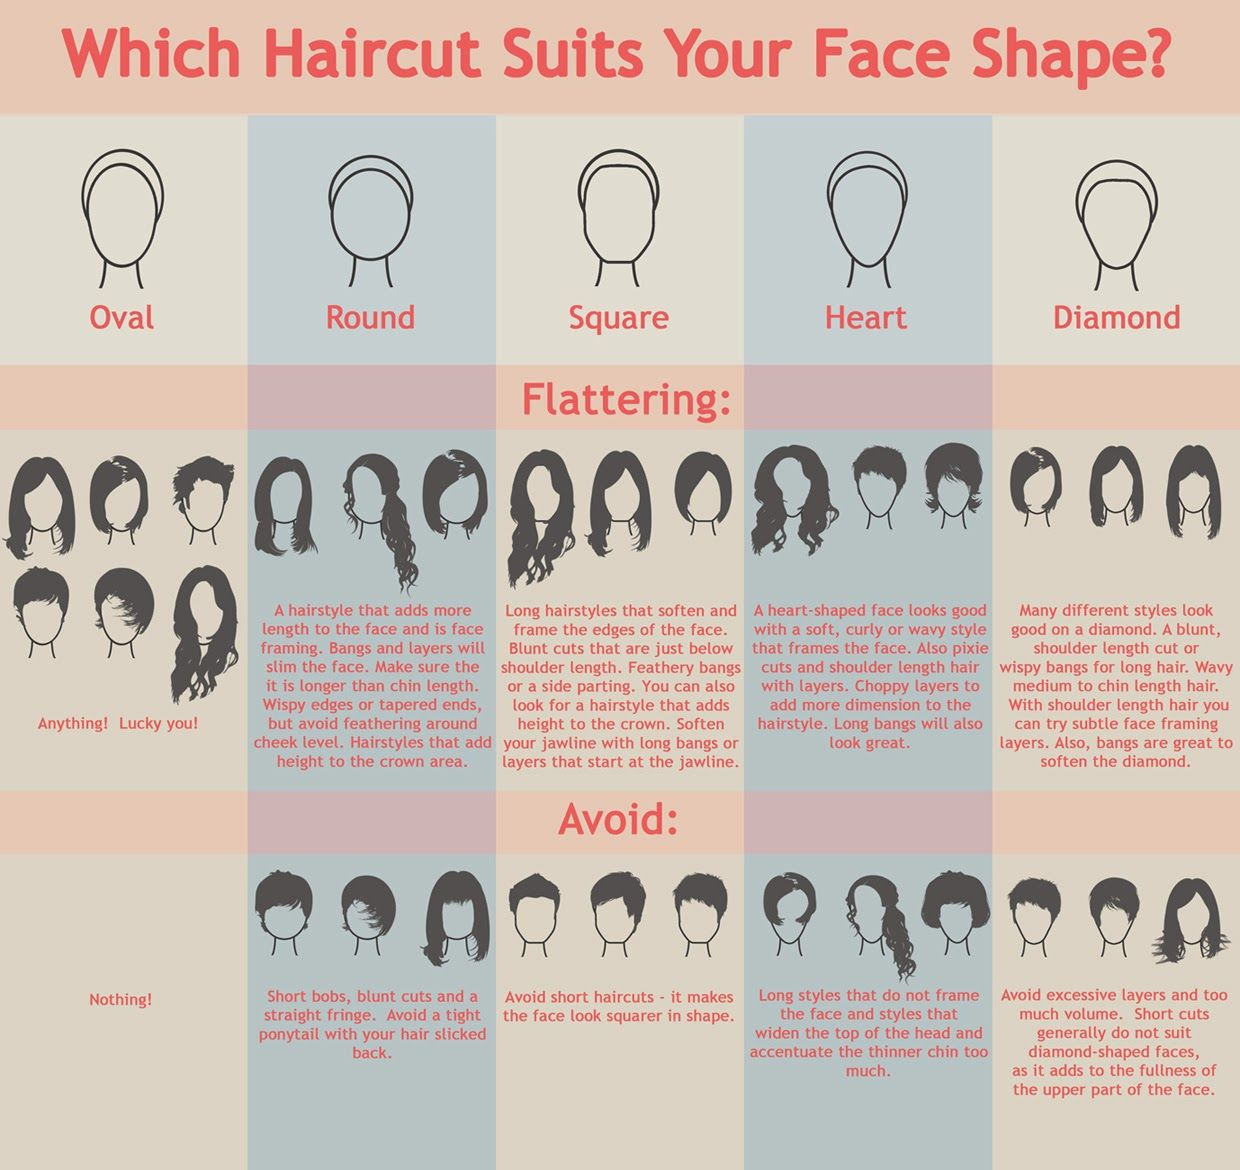 15 tips and tricks on how to flatter your face shape | mother